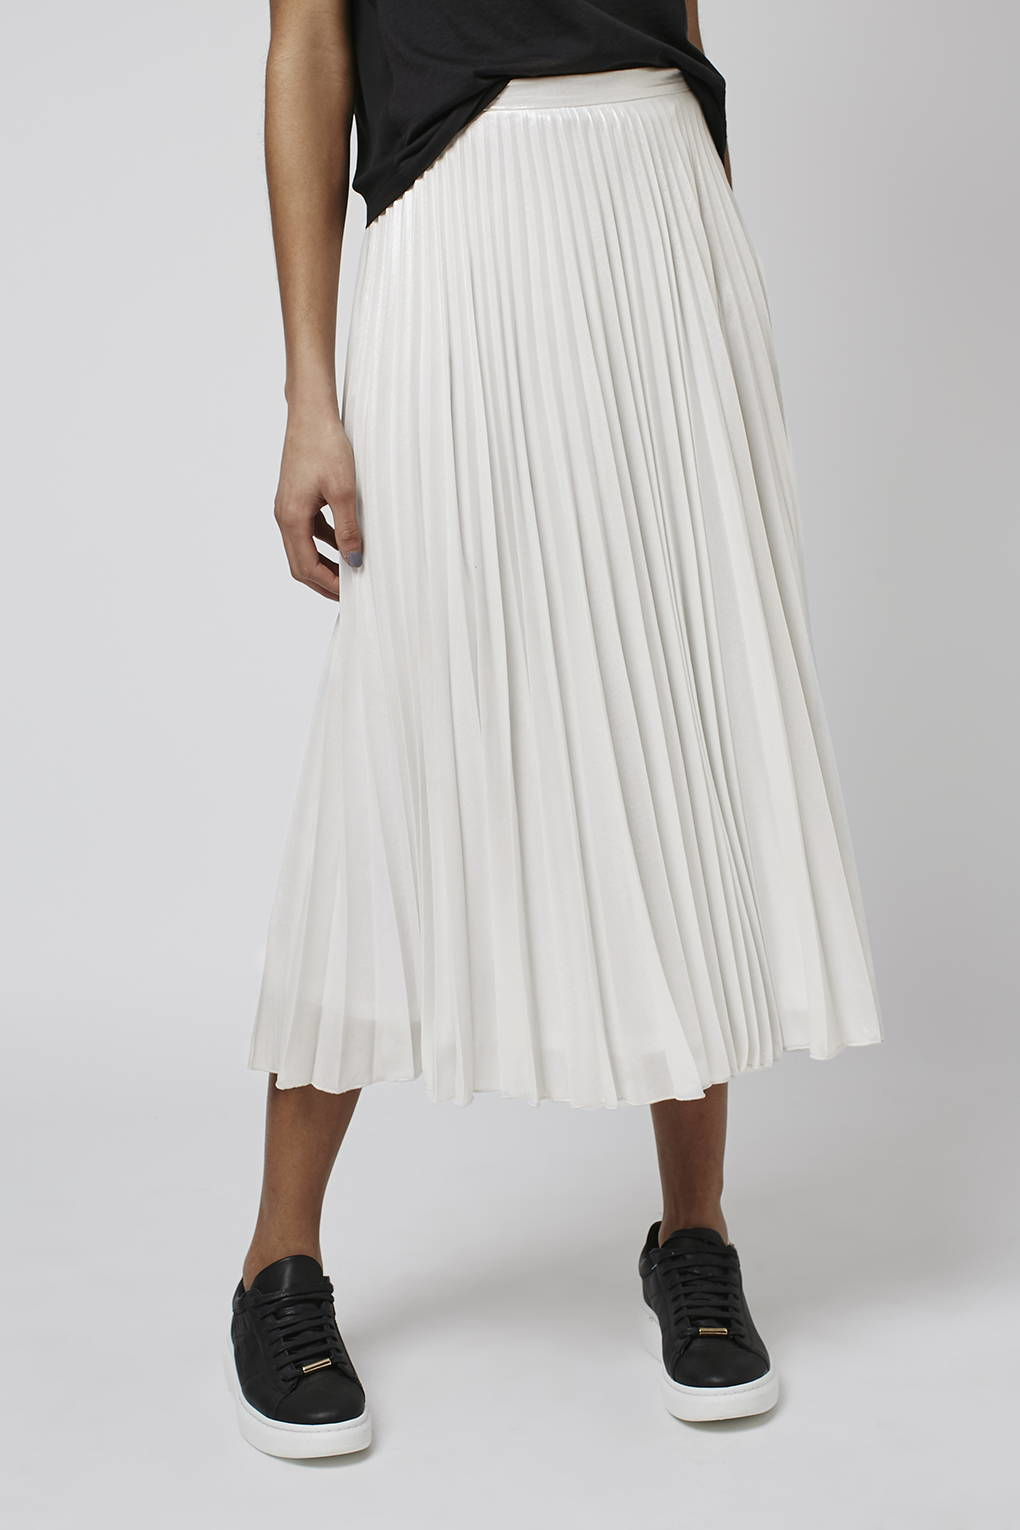 b97703a93 TOPSHOP Iridescent Pleat Skirt in White - Lyst